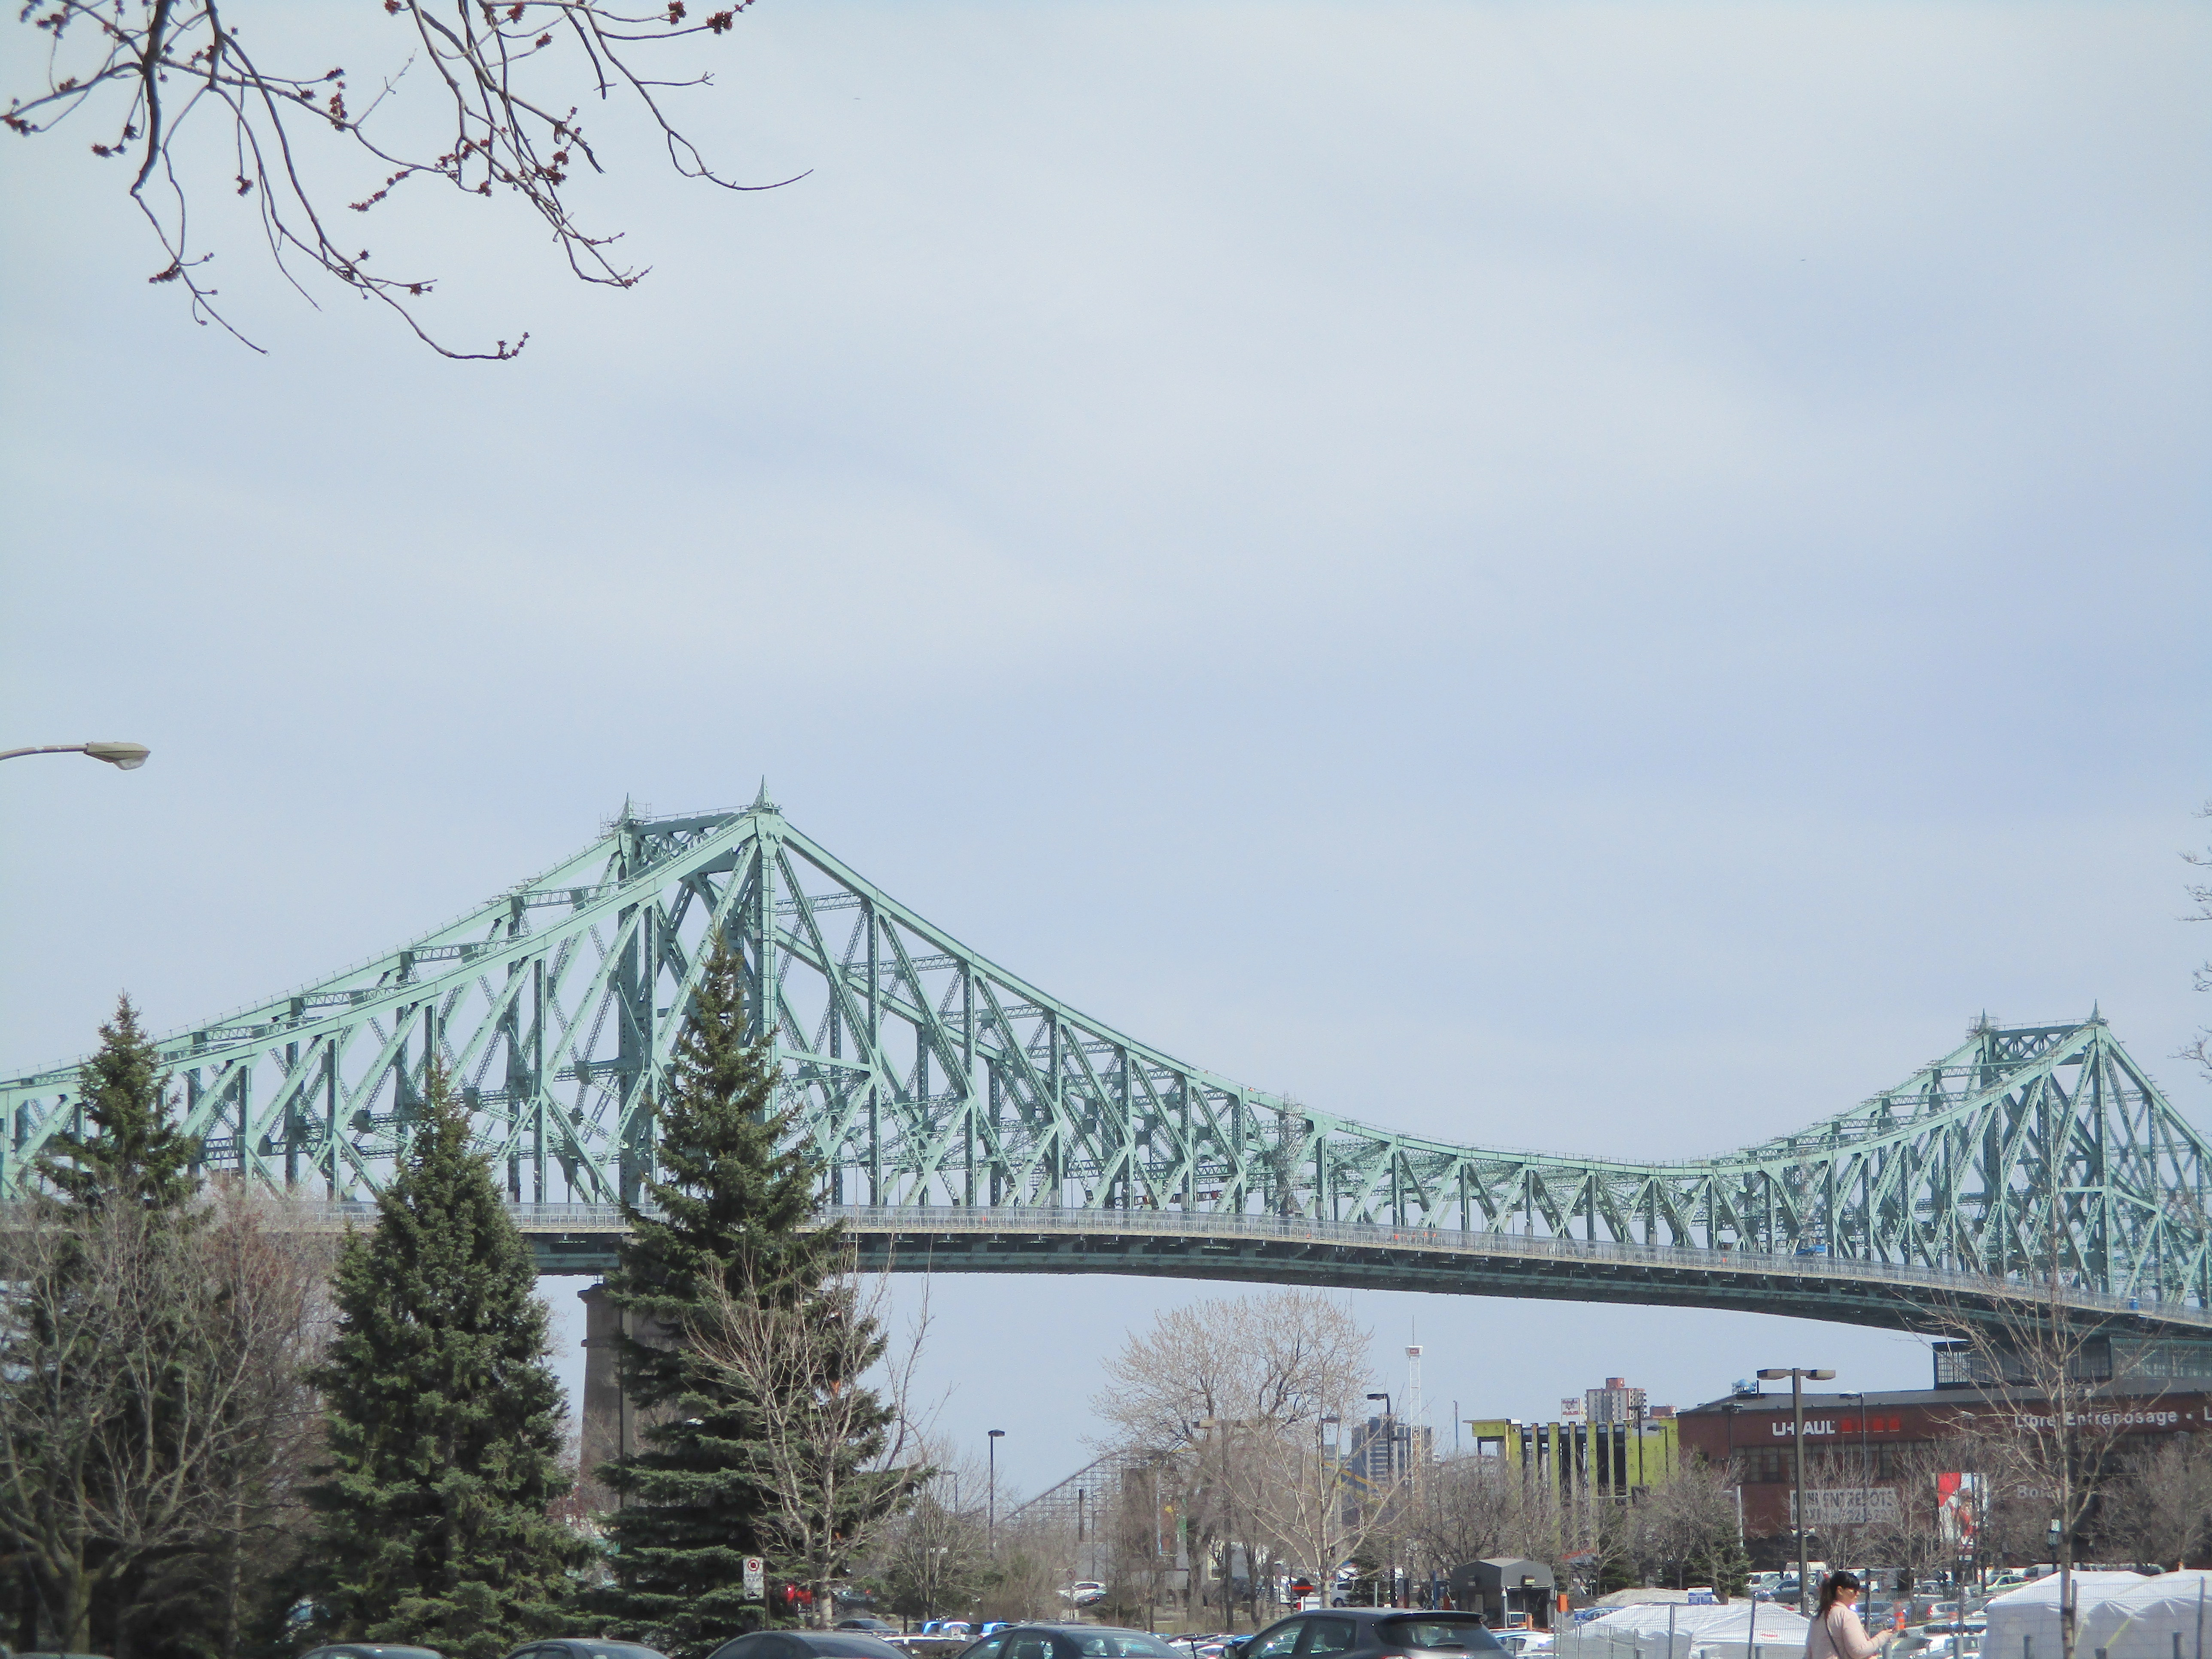 blog-mode-nantes-pont-jacques-cartier-montreal